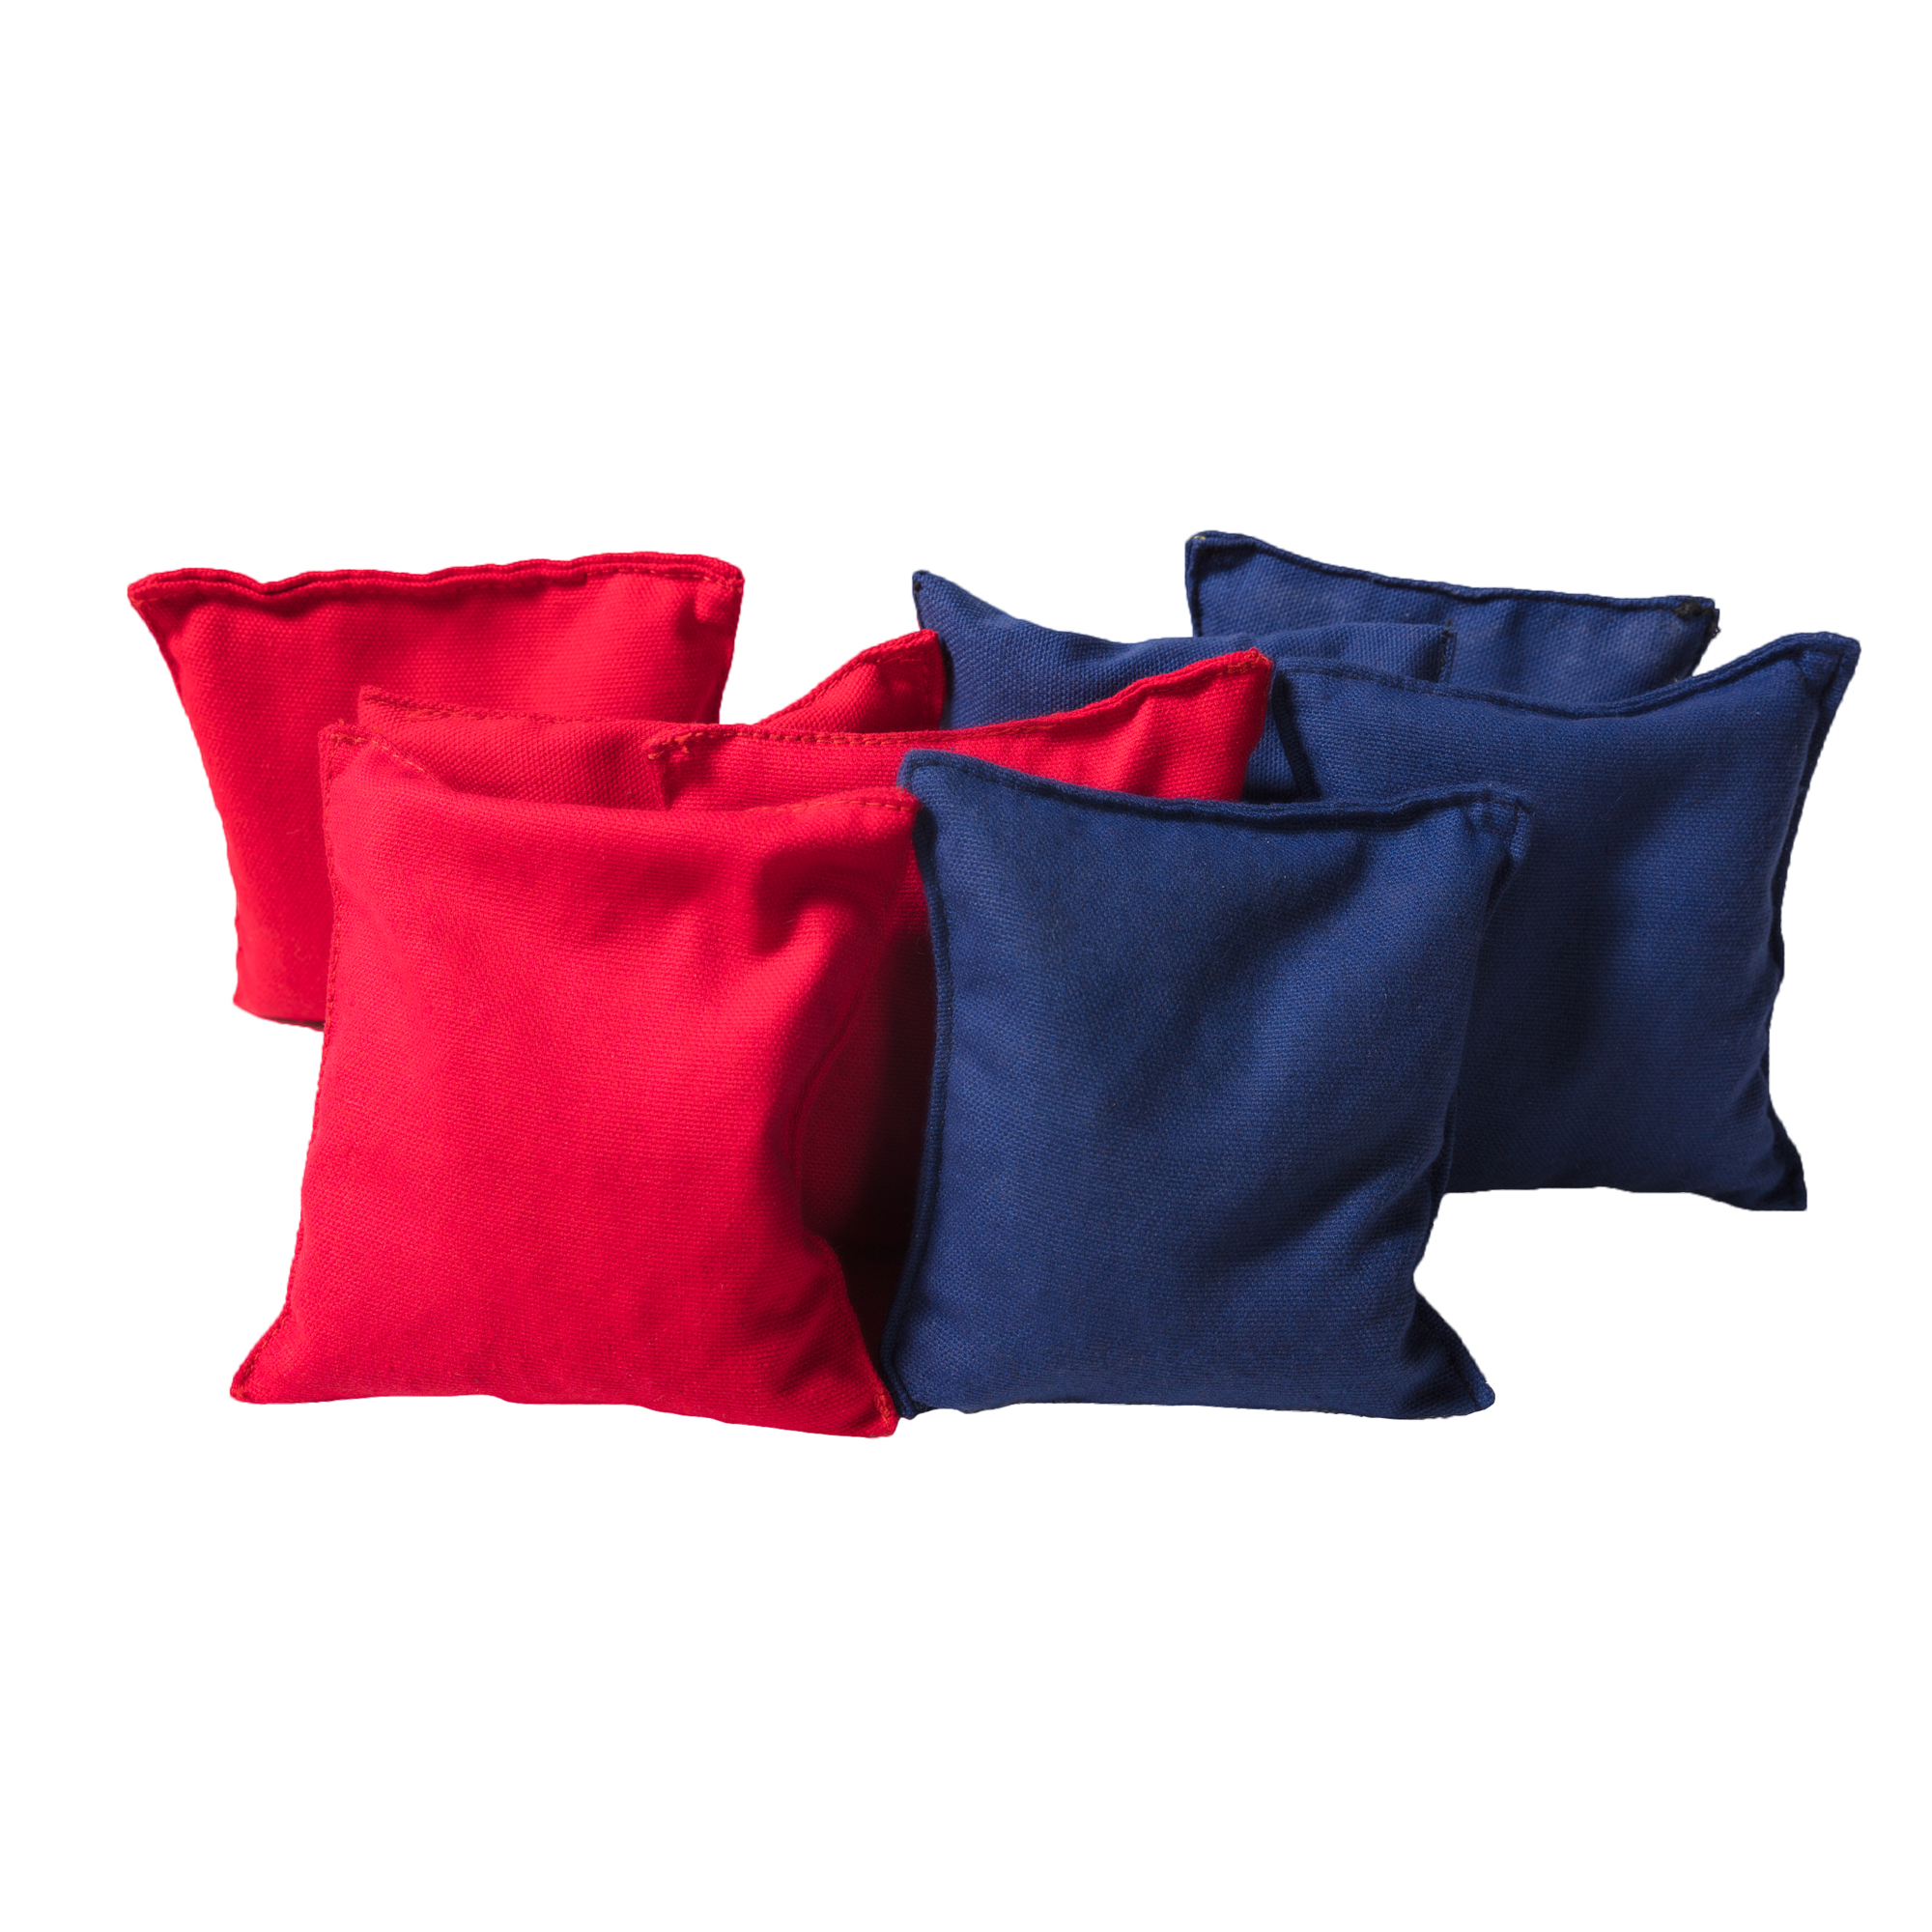 Cornhole Beanbags Replacement 4 Red & 4 Navy Blue (8 Bags) by Phelps Group